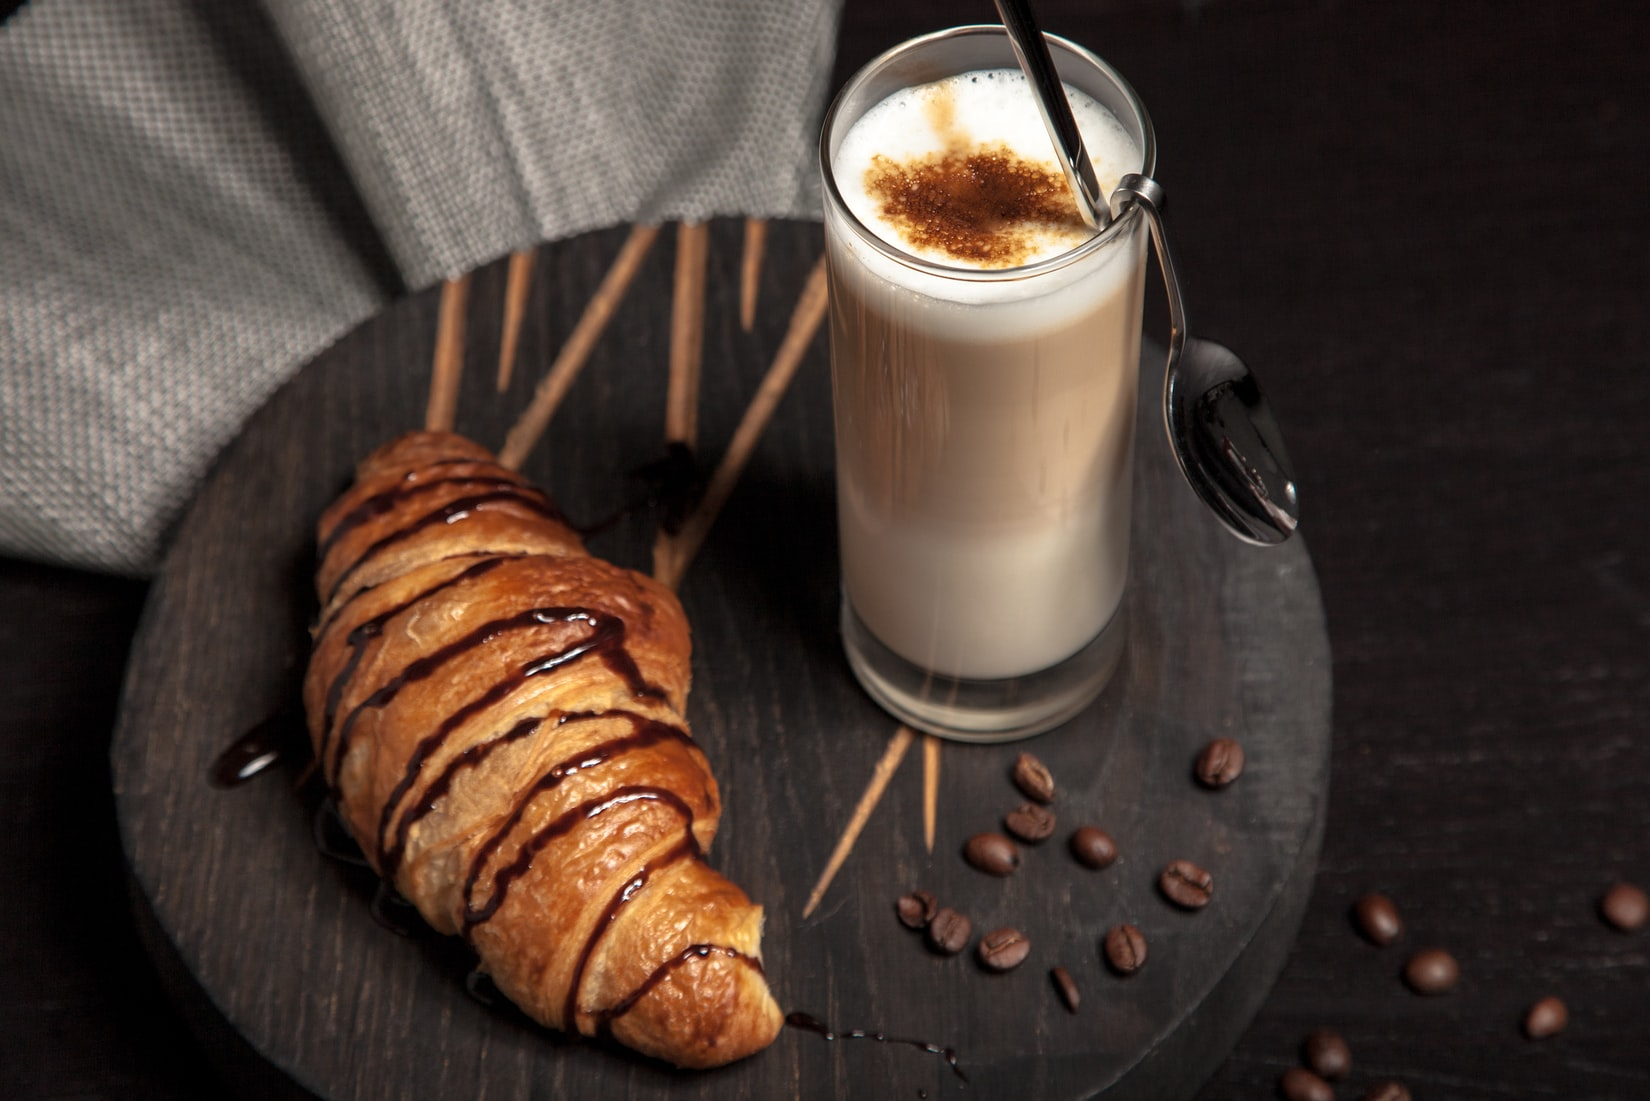 Croissants and Coffee 36